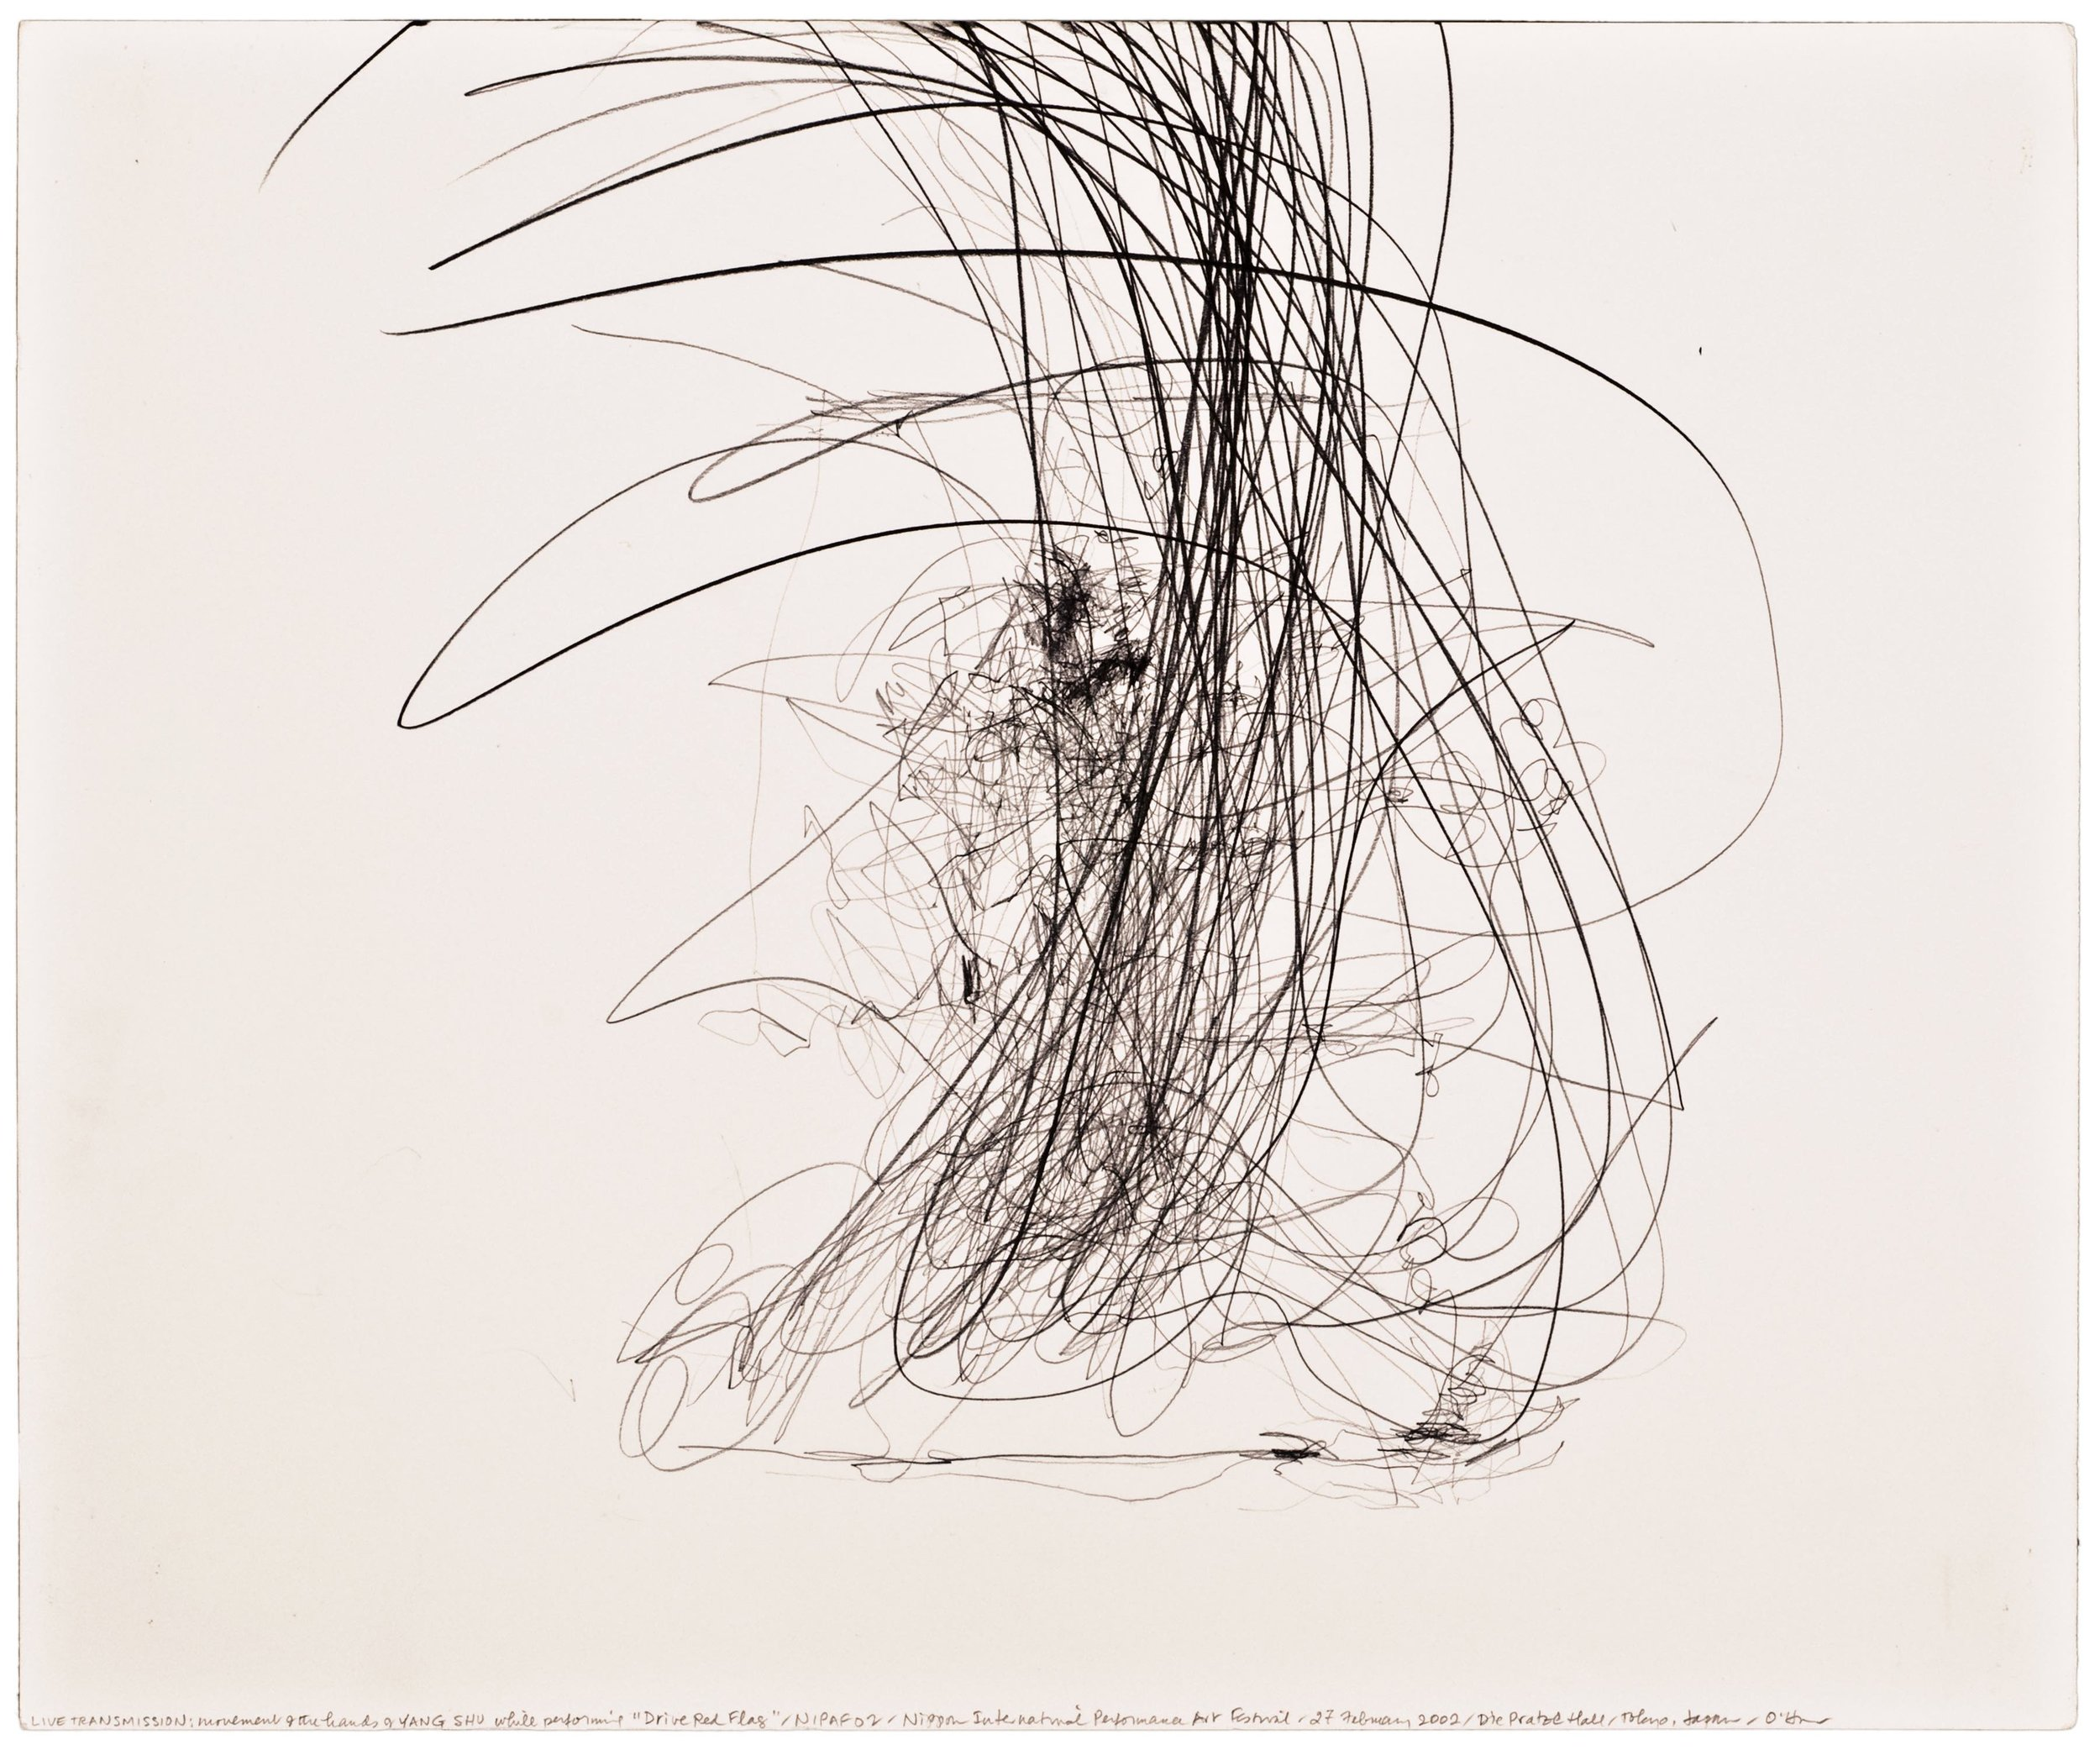 Morgan O'Hara, LIVE TRANSMISSION: movement of the hands of SHU YANG while performing Drive Red Flag /NIPAF '02 / Nippon International Performance Art Festival / Die Pratze Hall / 27 February 2002 /Tokyo, Japan, 14 x 17 in.,Graphite on Bristol paper, 2002